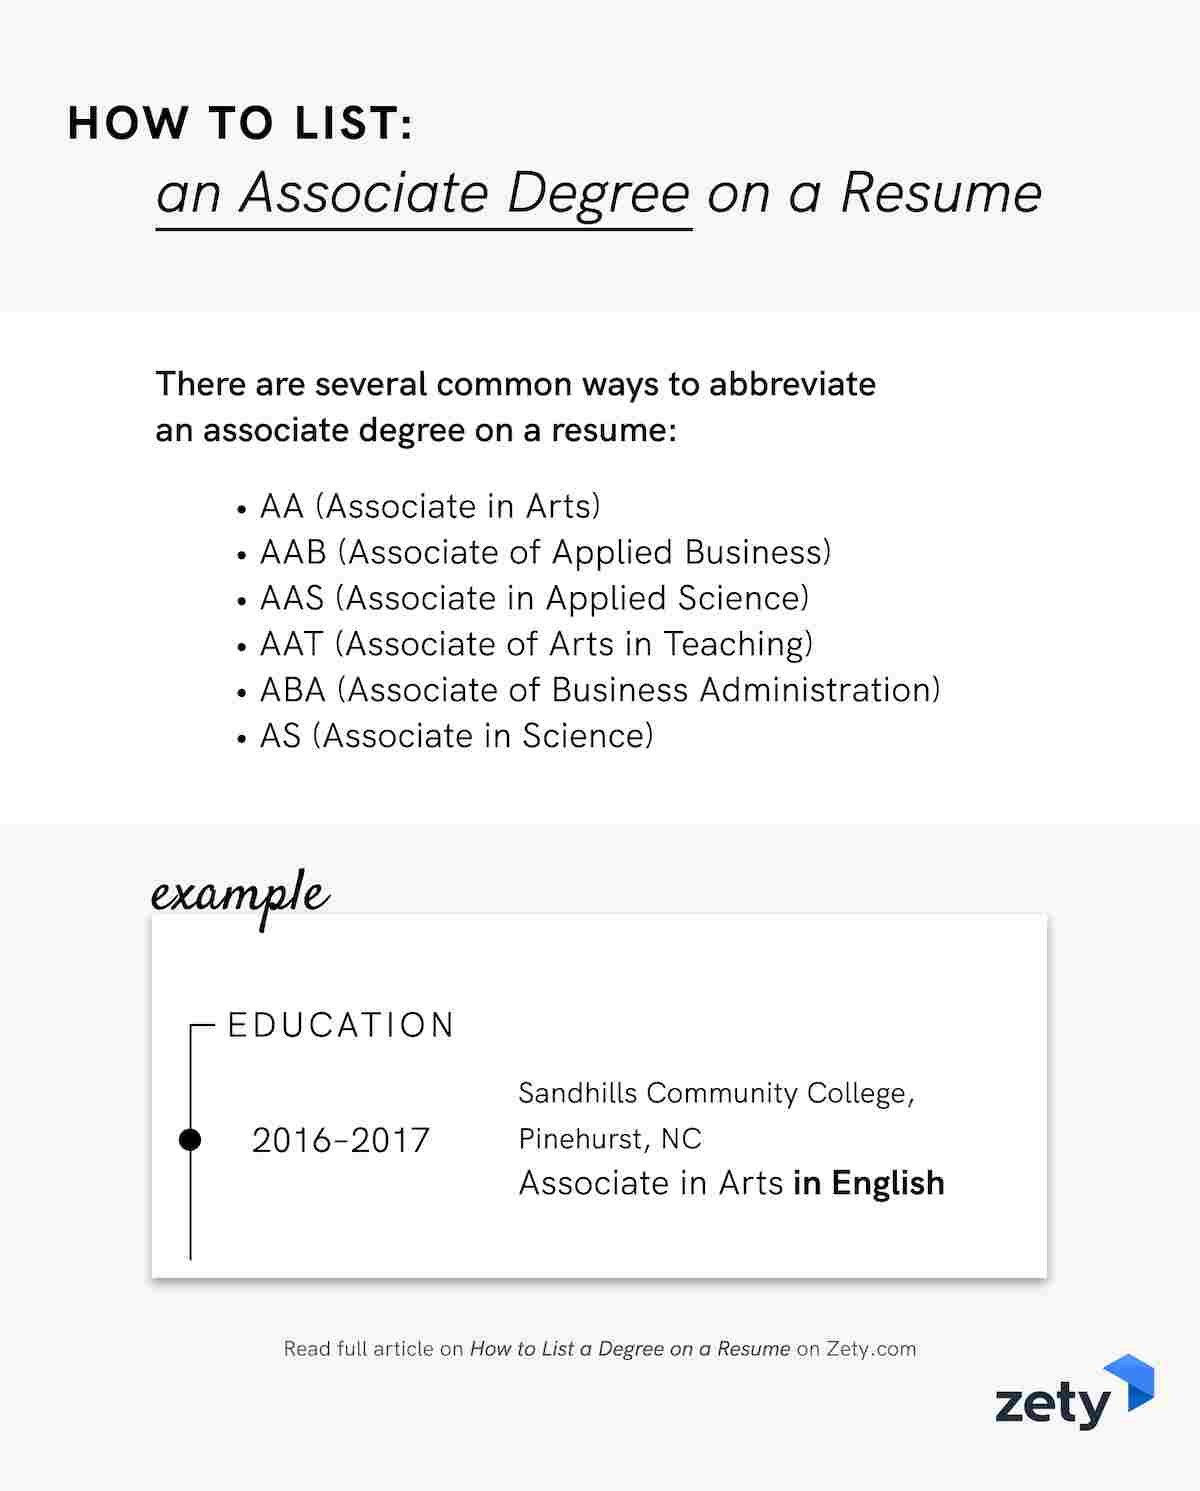 how to list an Associate Degree on a Resume